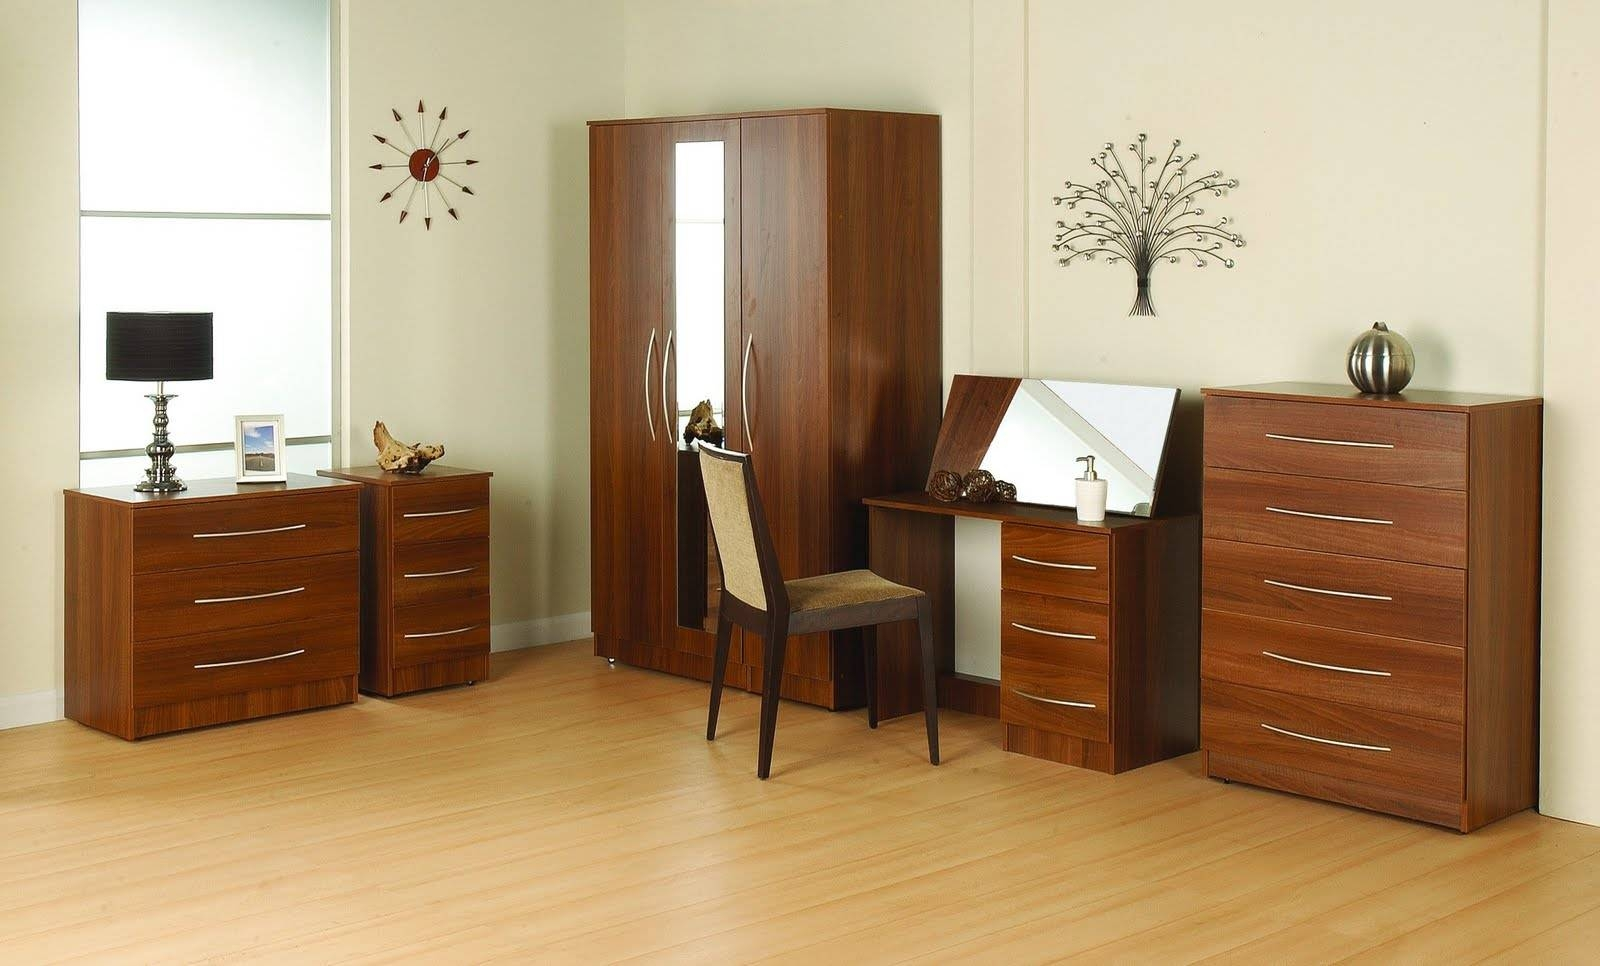 Wardrobe : Cream And Dark Wood Wardrobe Dark Wood Wardrobe With for Dark Wood Wardrobe Cheap (Image 20 of 30)